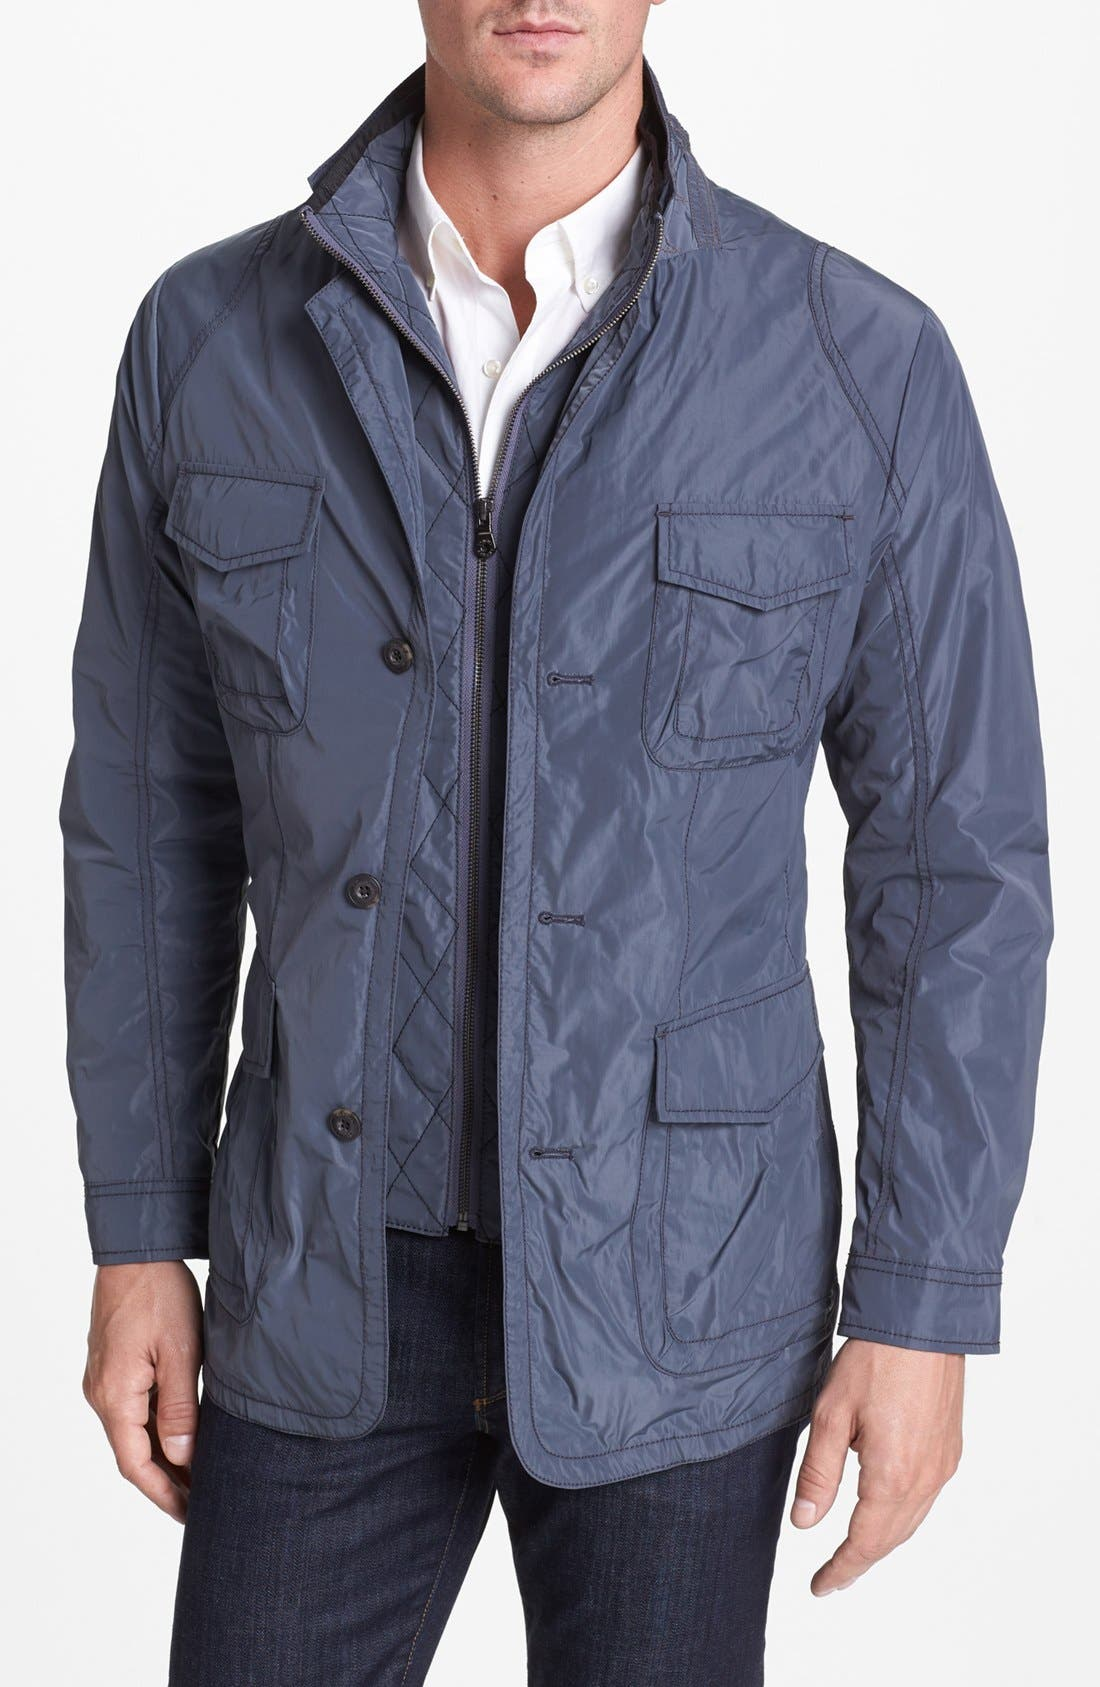 Alternate Image 1 Selected - Tommy Bahama 'Porto' Jacket